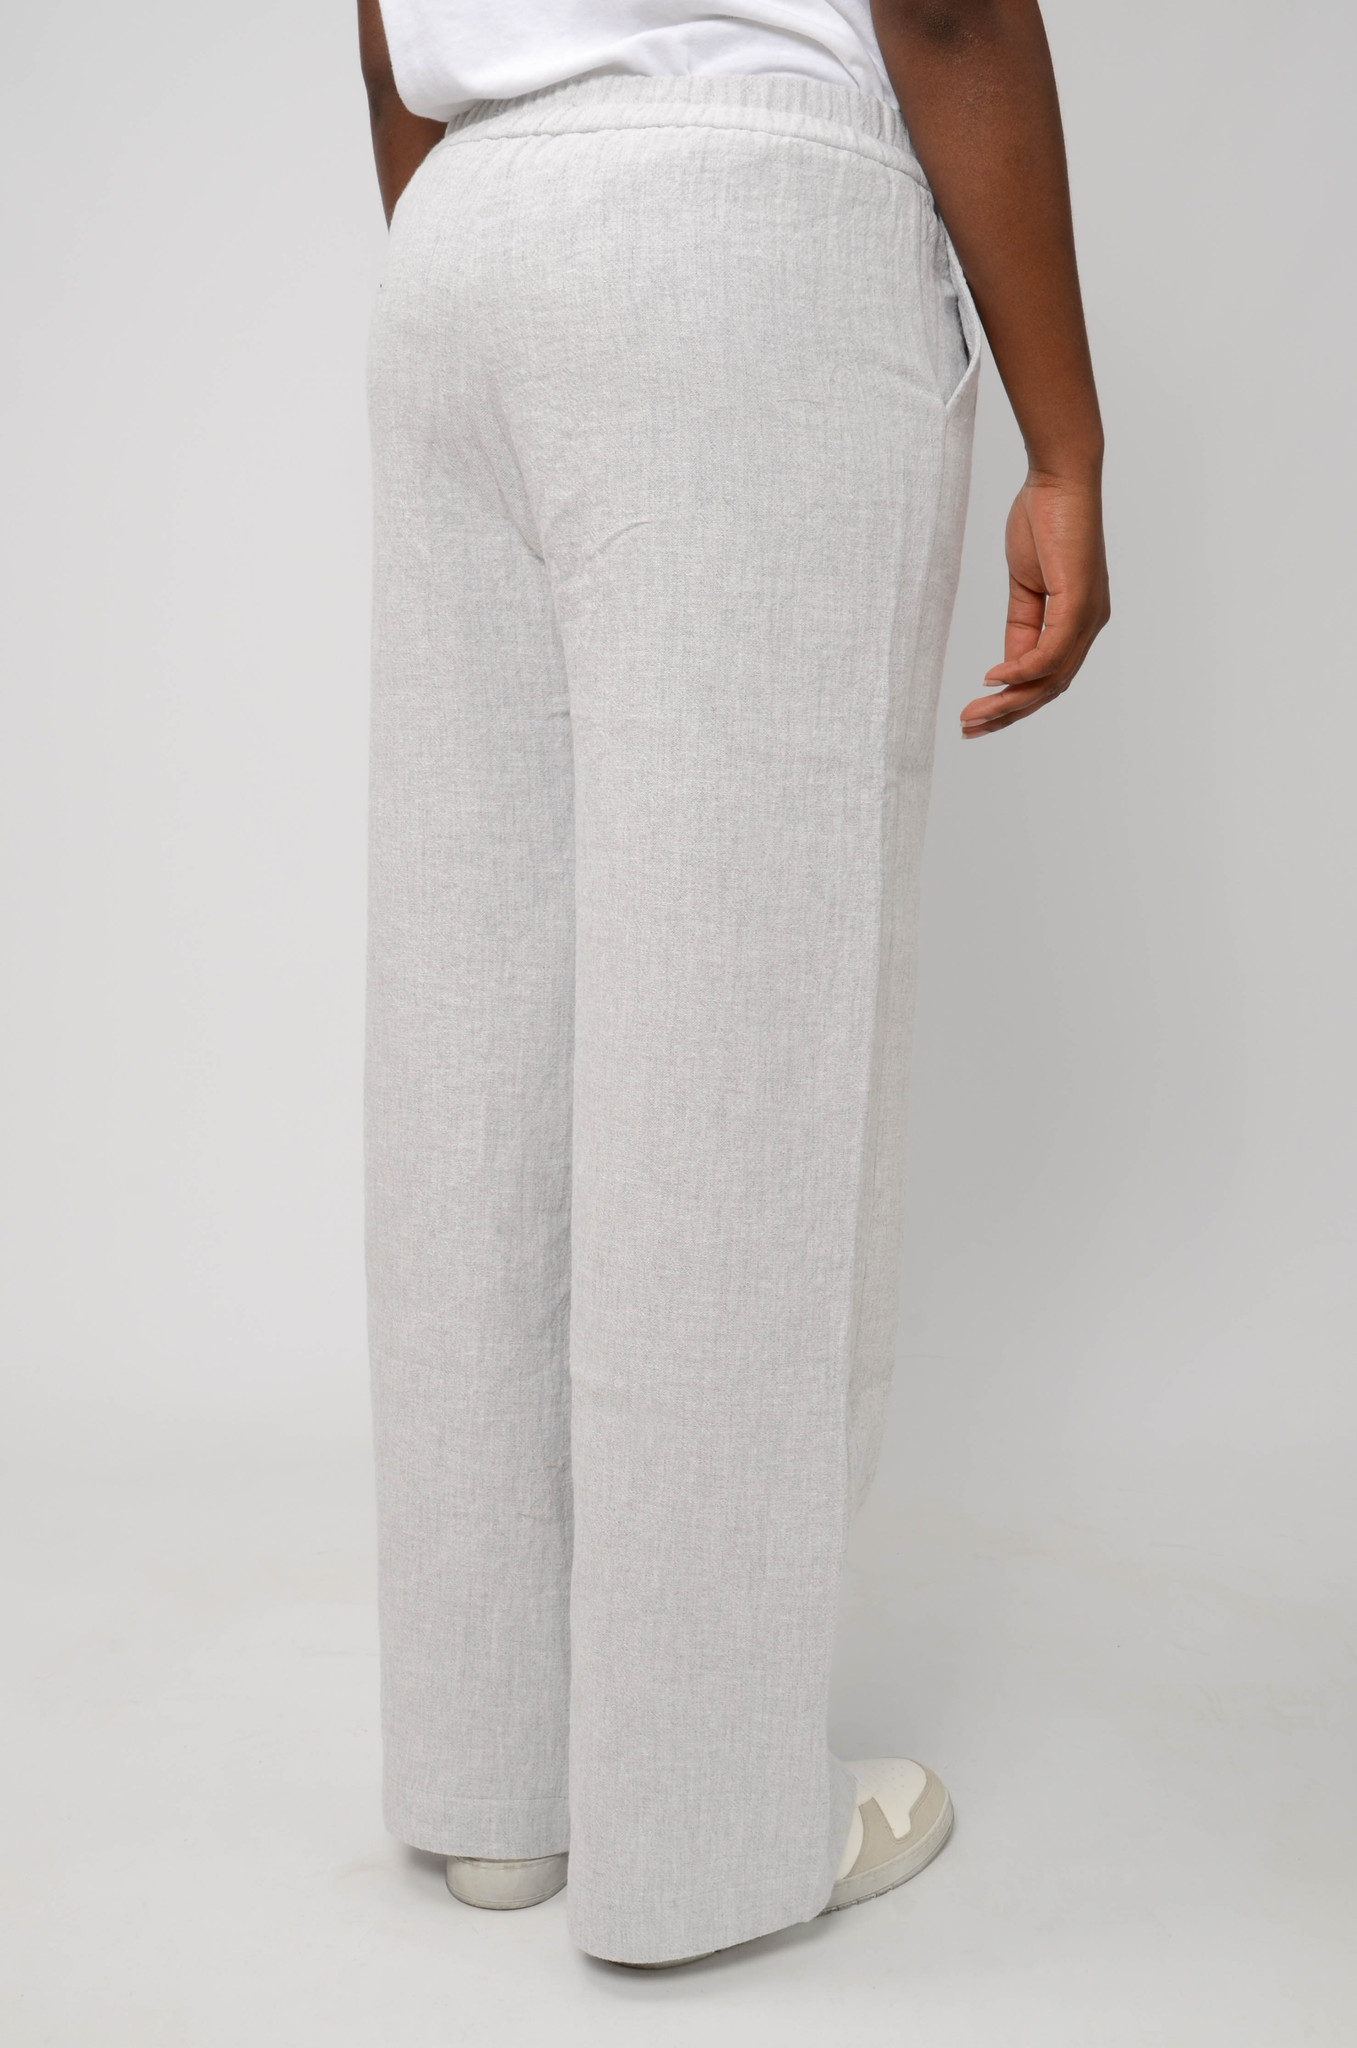 JACKIE TROUSERS IN LIGHT GREY-4